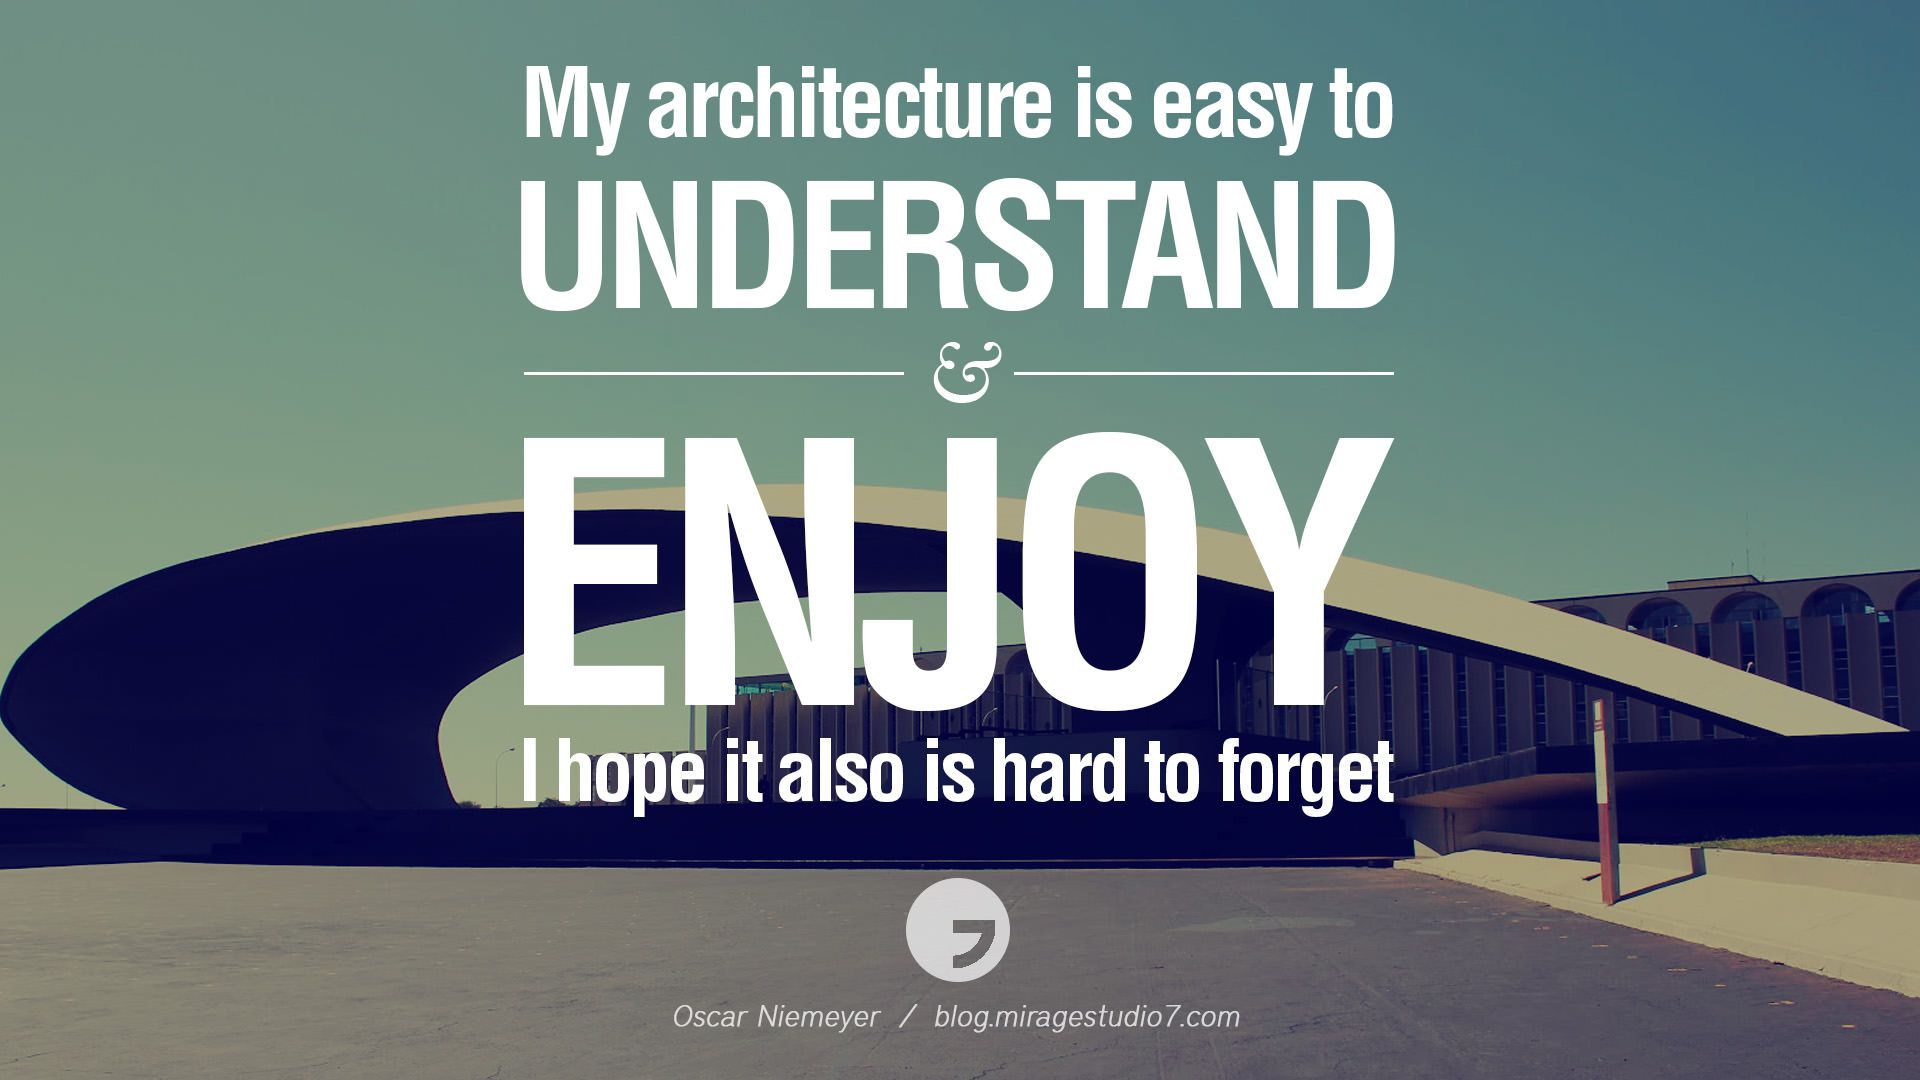 Pin by Bob Bowlus on Architecture Quotes | Architecture ...